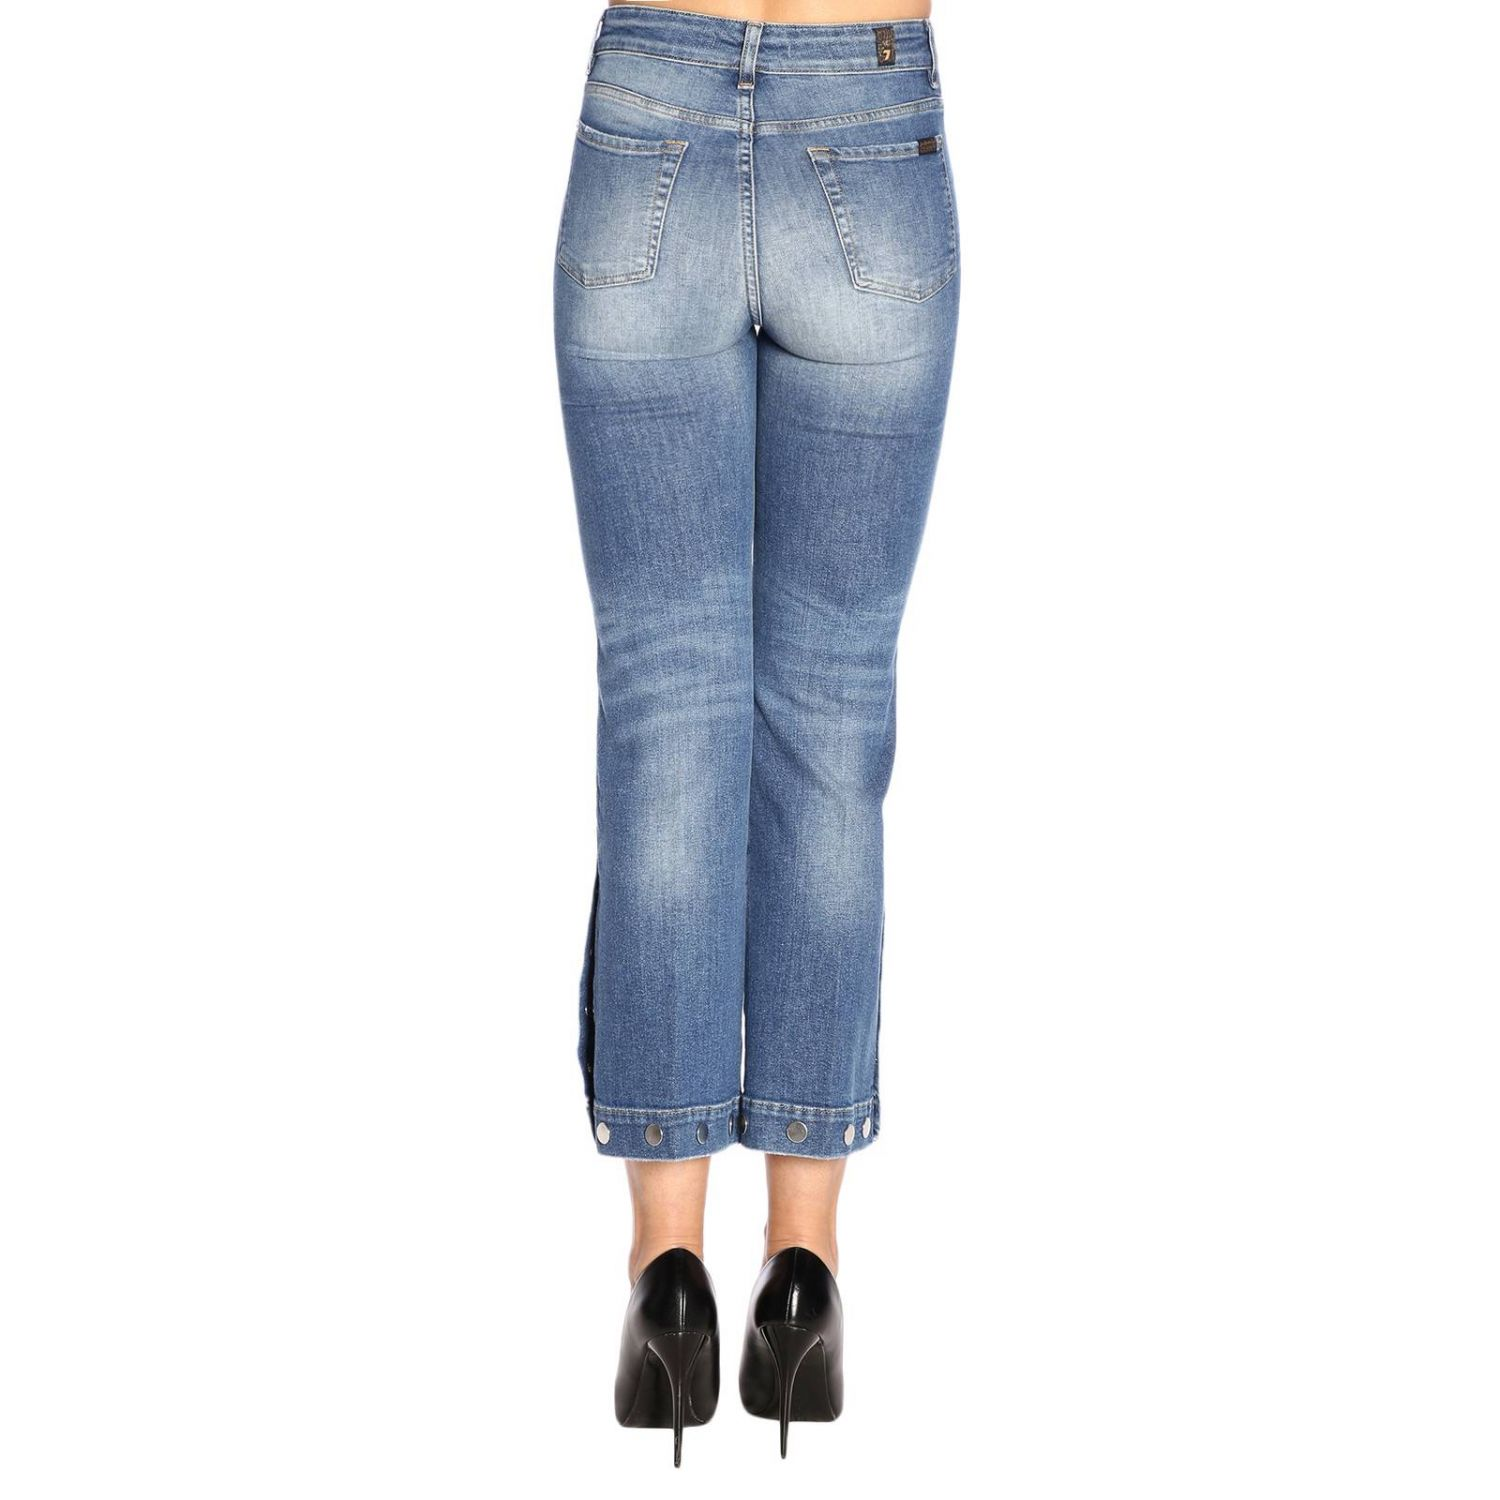 Jeans 7 For All Mankind a 5 tasche stretch used a trombetta blue 3